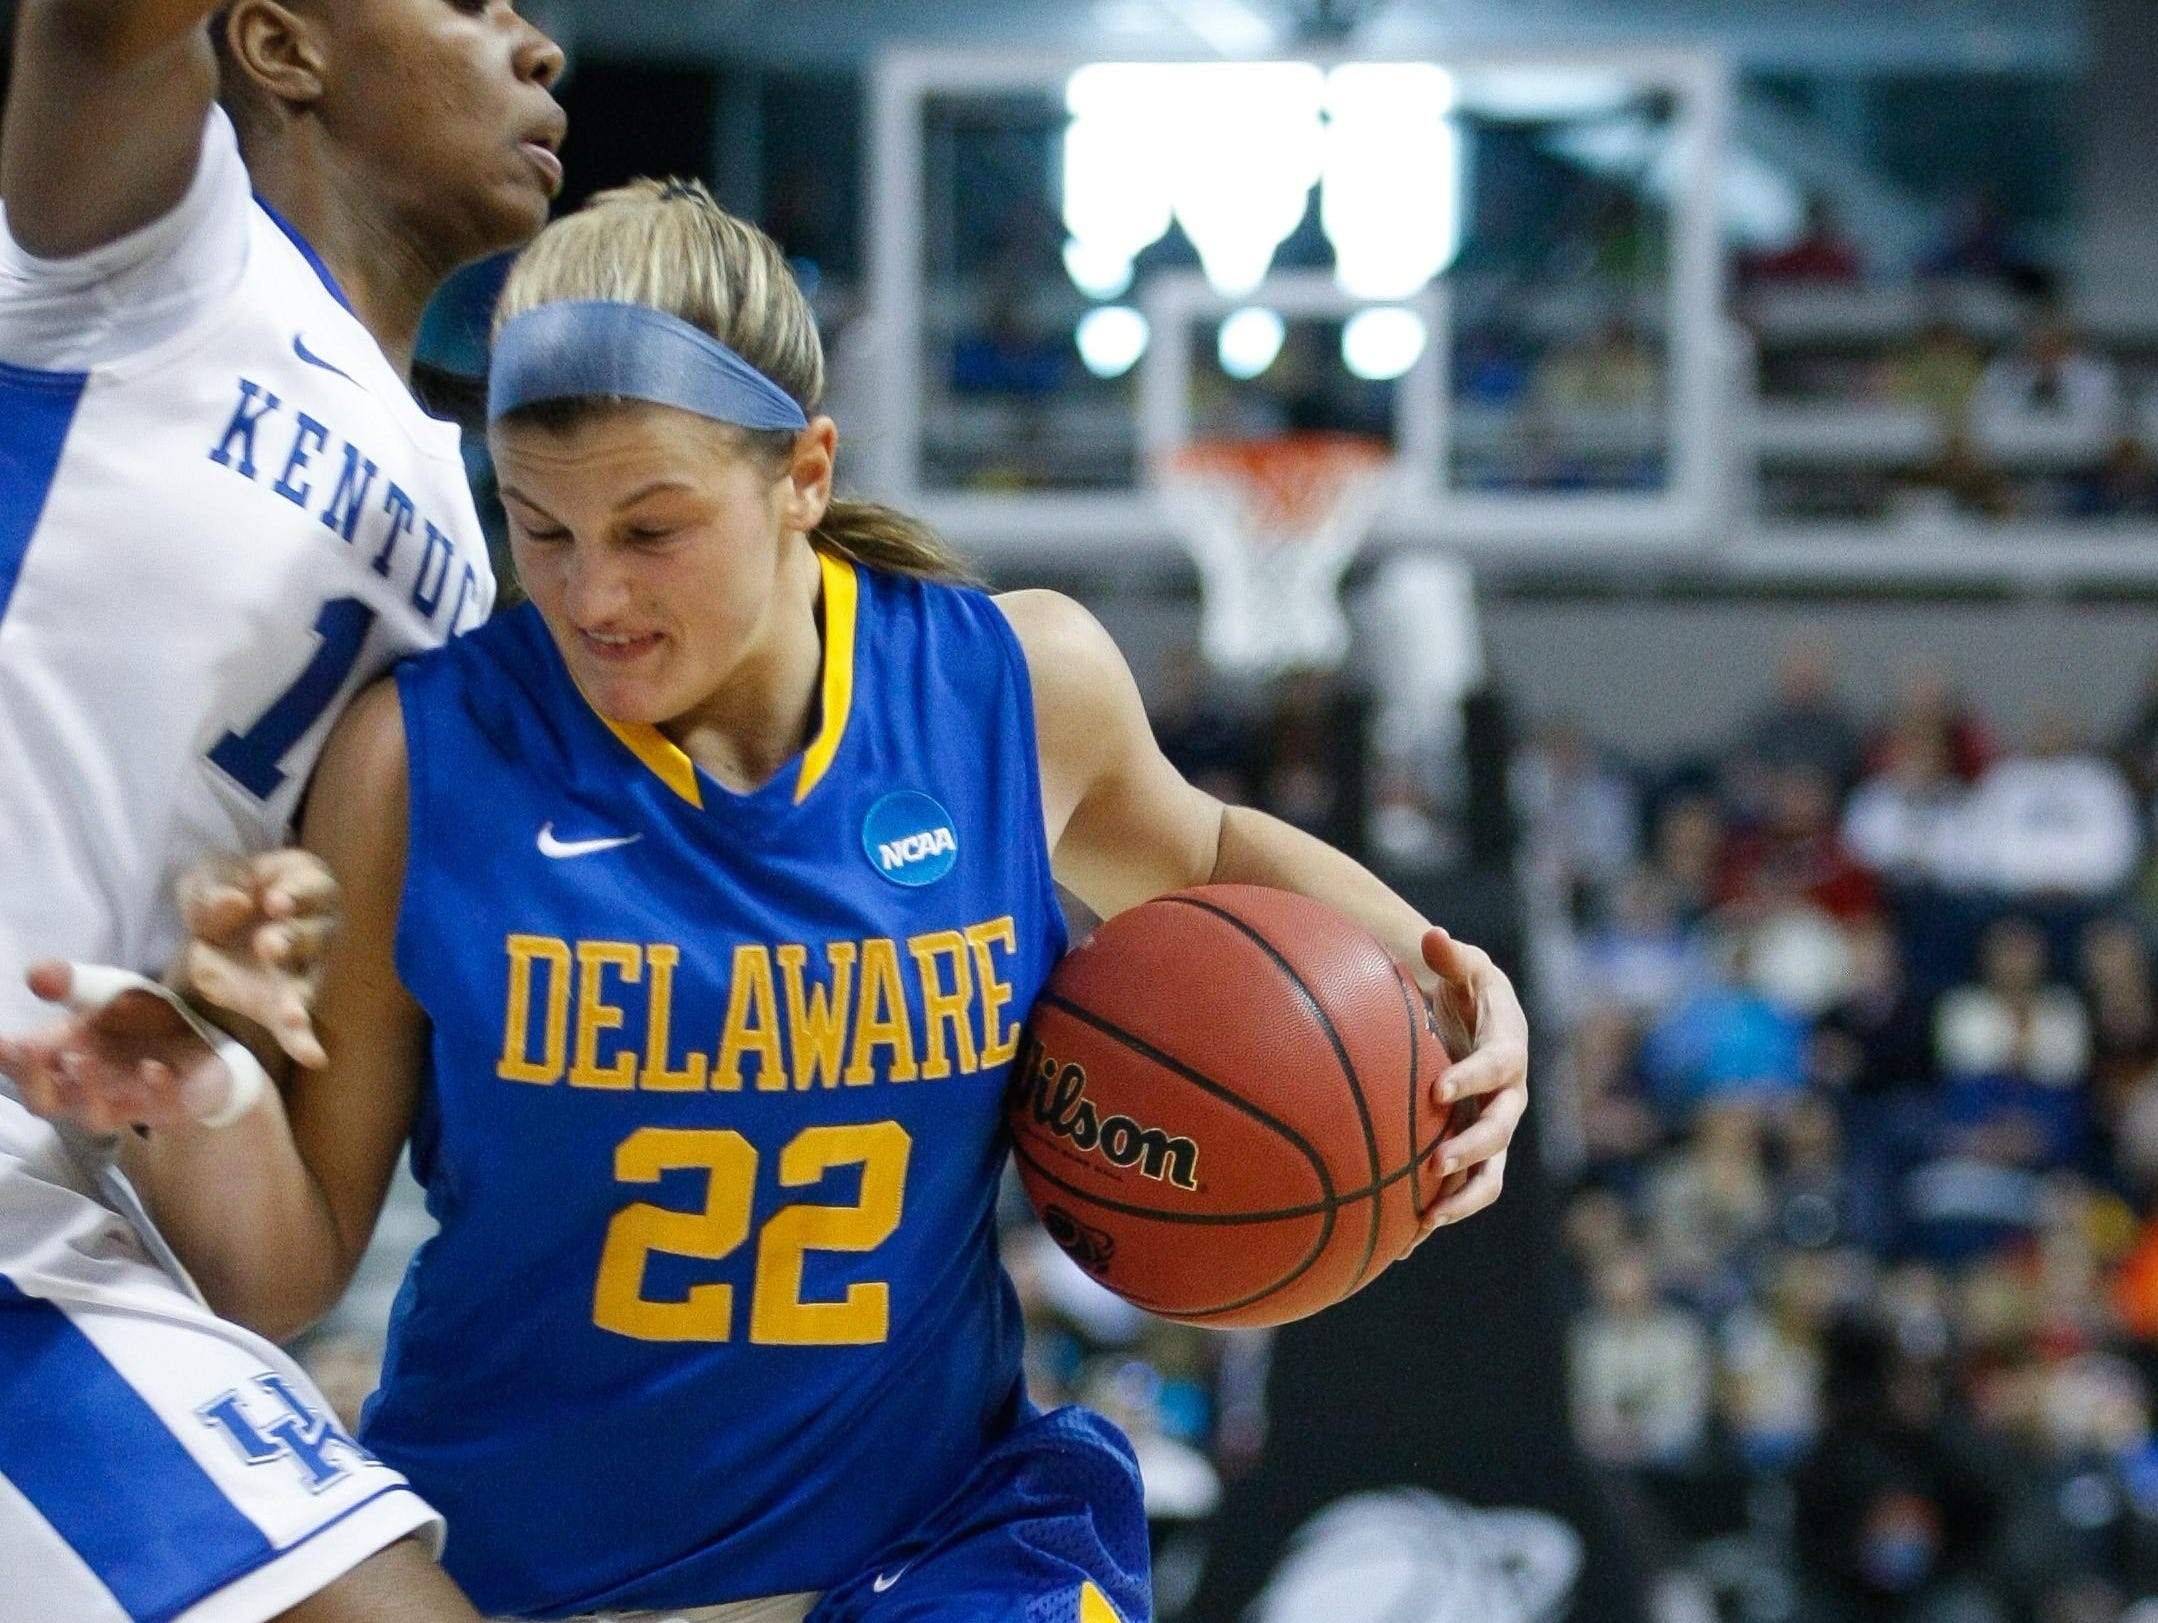 Delaware guard Lauren Carra tries to get around the Kentucky defense. Delaware takes on Kentucky at Webster Bank Arena in the Regional semi-finals of the 2013 NCAA Division I Women's Basketball Championship in Bridgeport, Ct. Saturday March 30, 2013. SUCHAT PEDERSON/THE NEWS JOURNAL